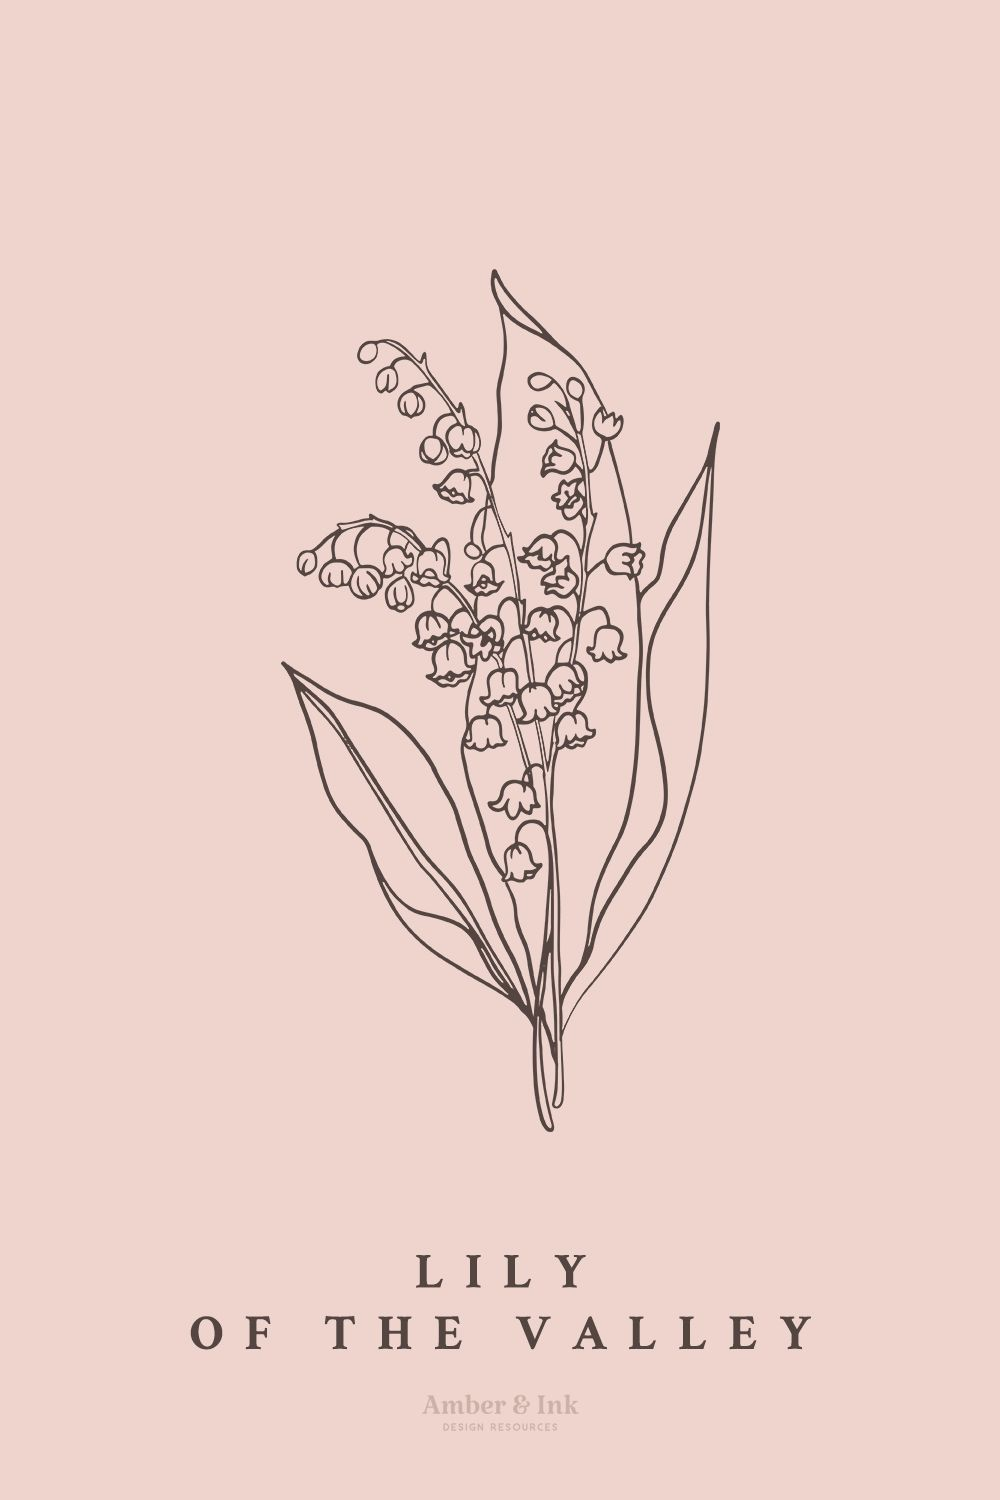 Lily of the Valley Botanical Illustration